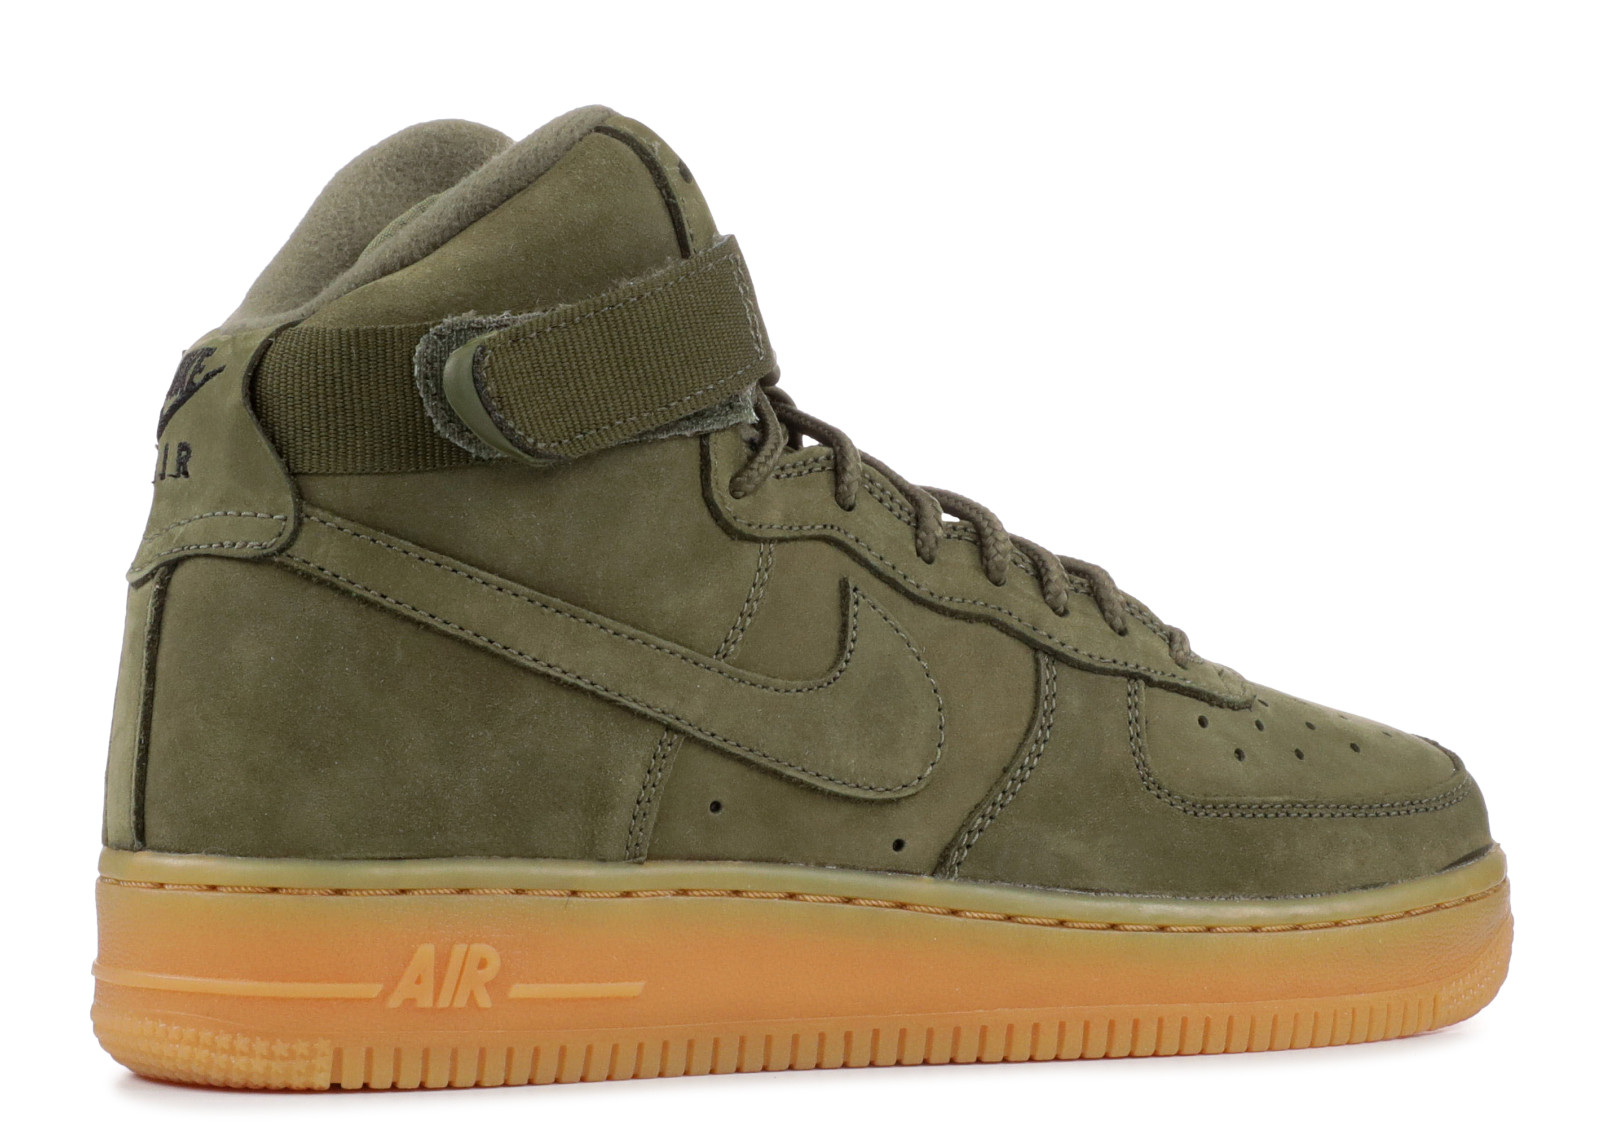 promo code 3f396 1ae45 Nike - Unisex - Air Force 1 High Wb (Gs) 'Dark Green ...